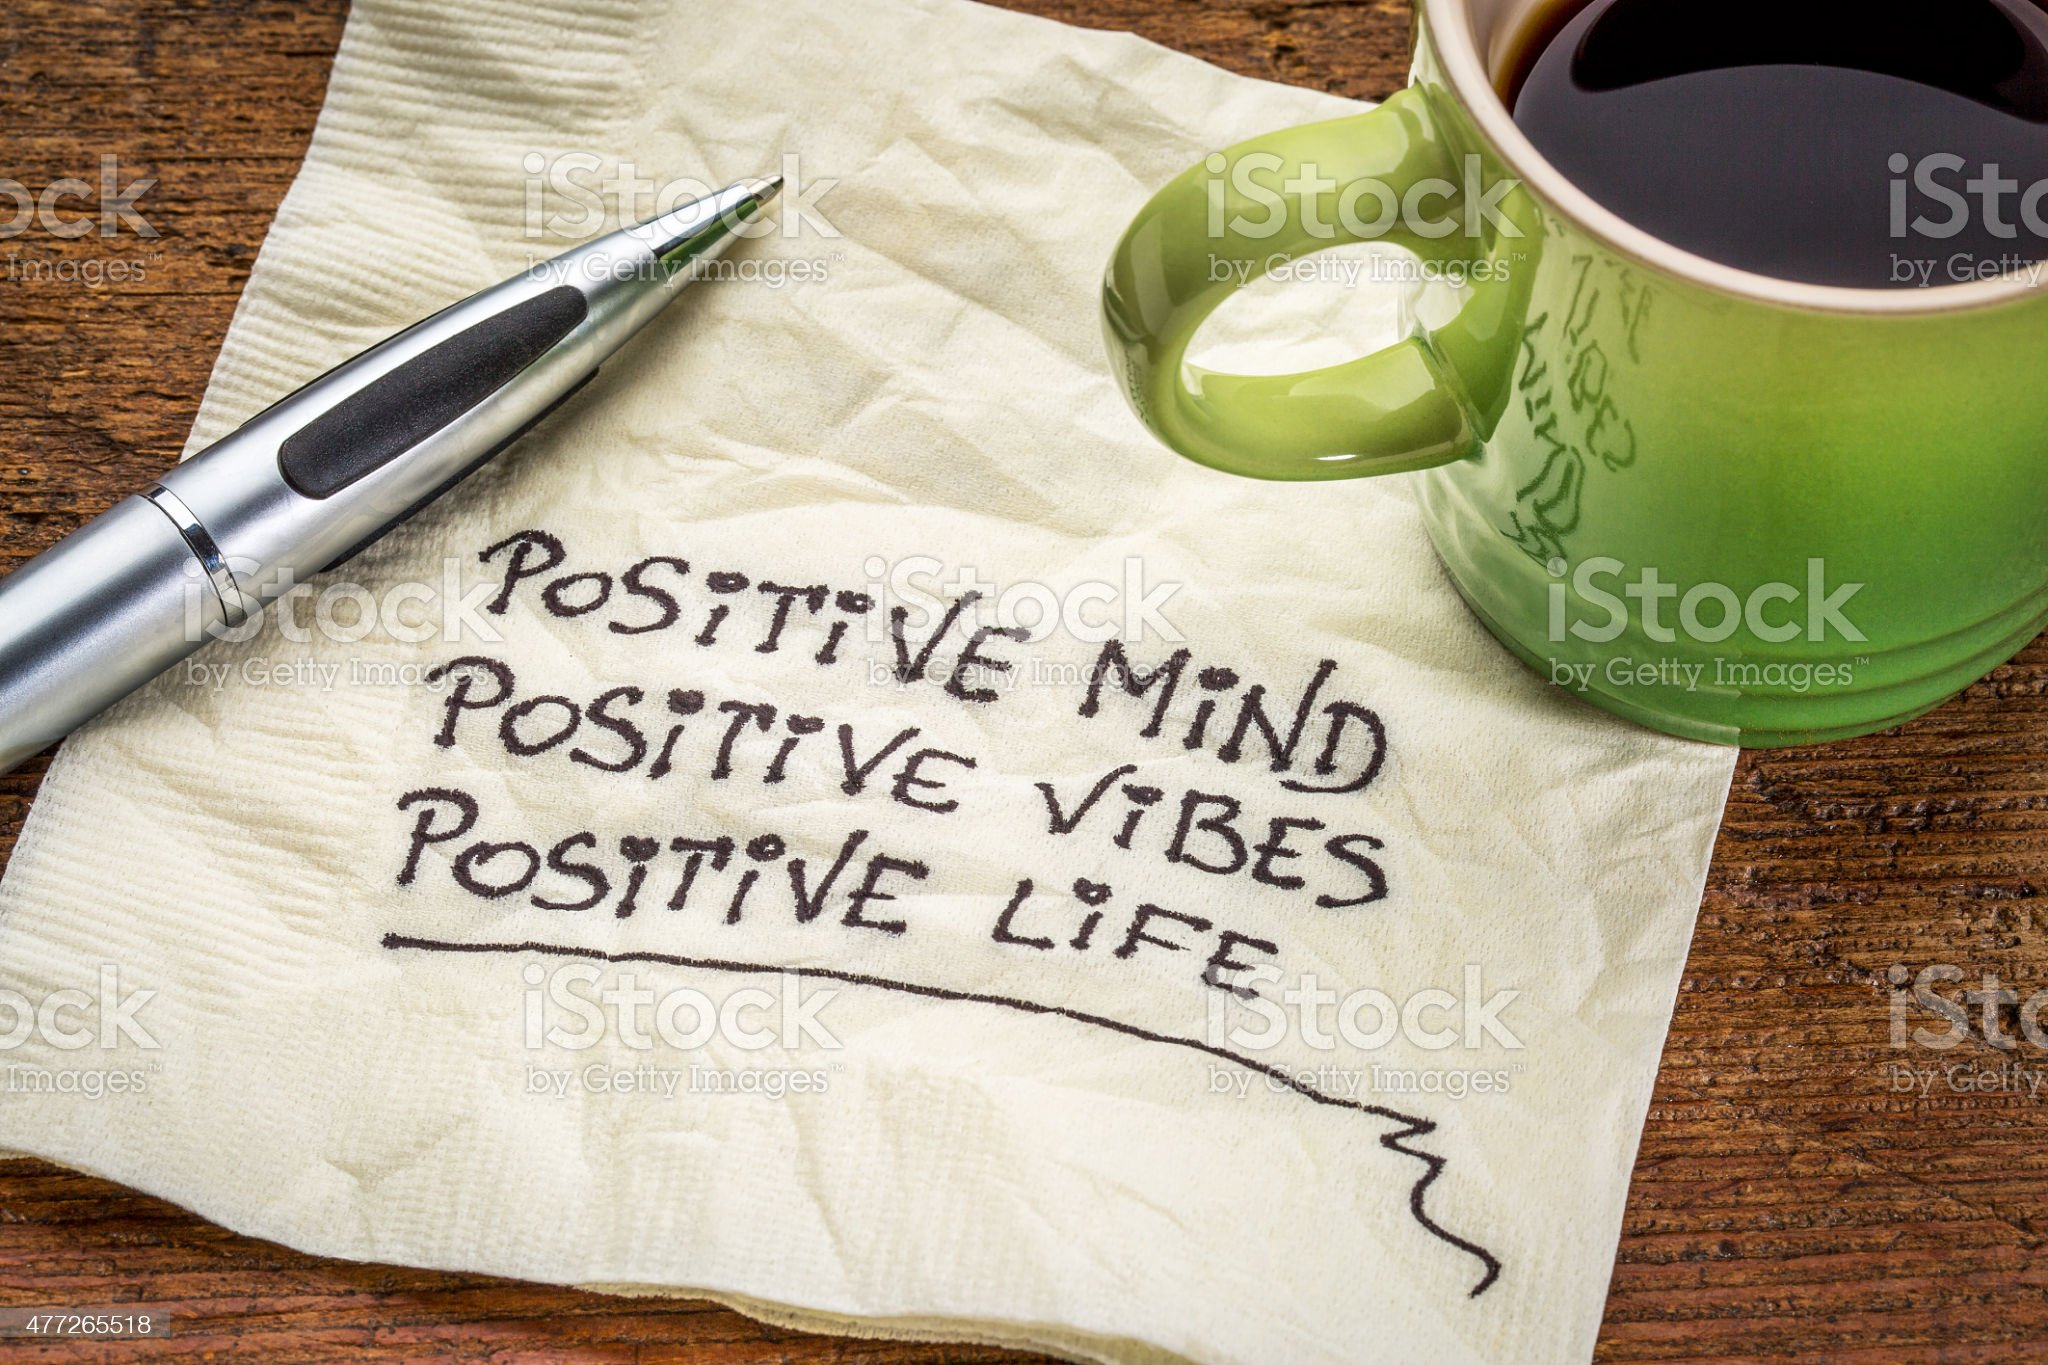 positive mind, vibes and life royalty-free stock photo